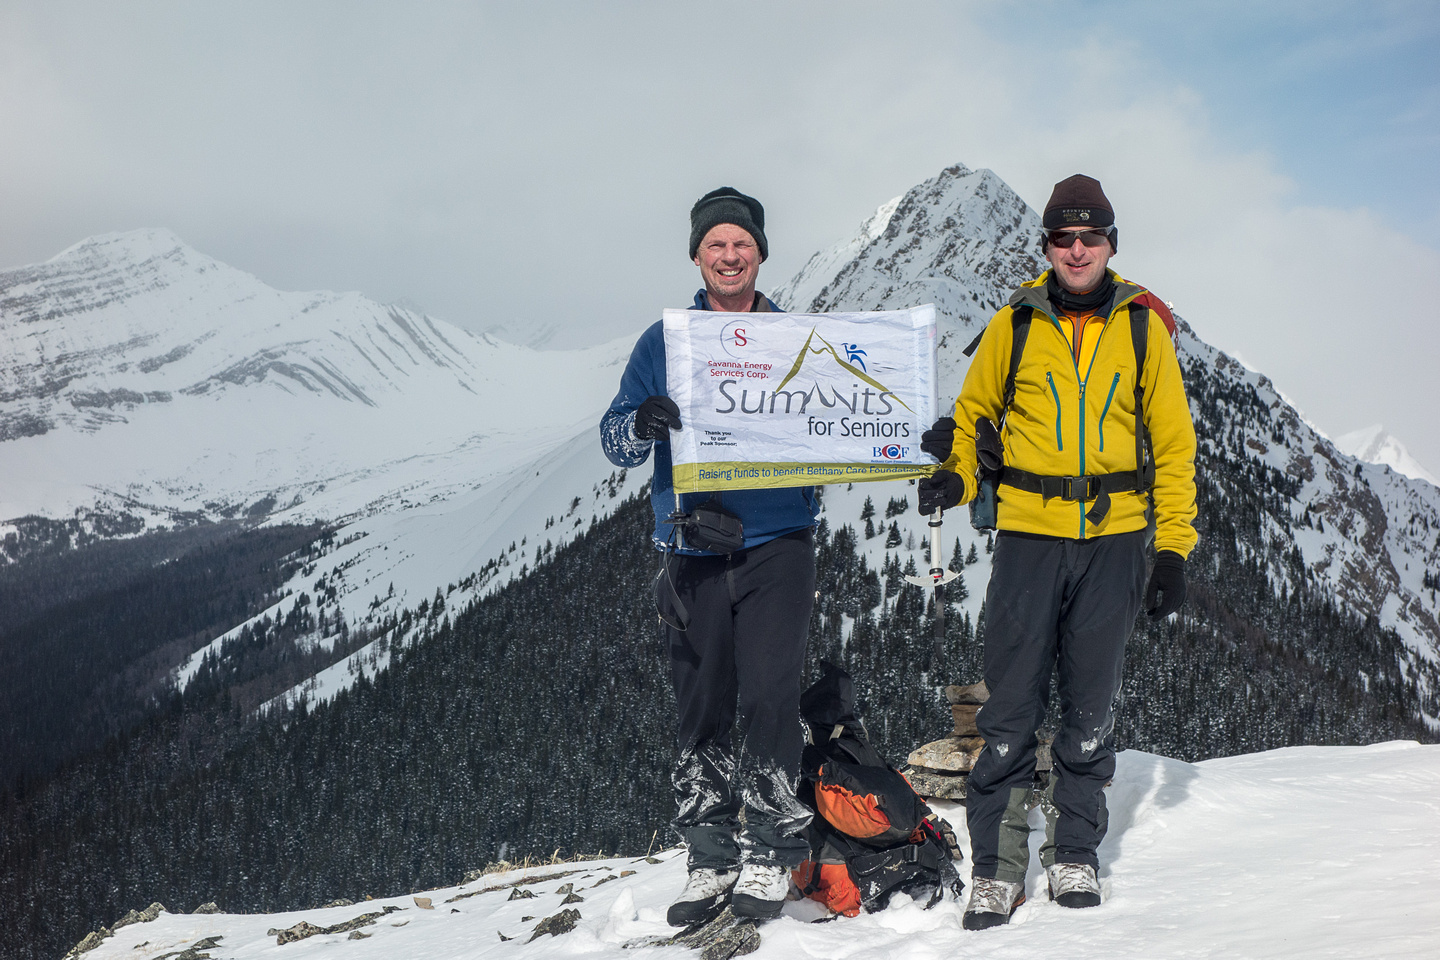 Raf and Kev celebrate his 50th summit on Little Lawson.